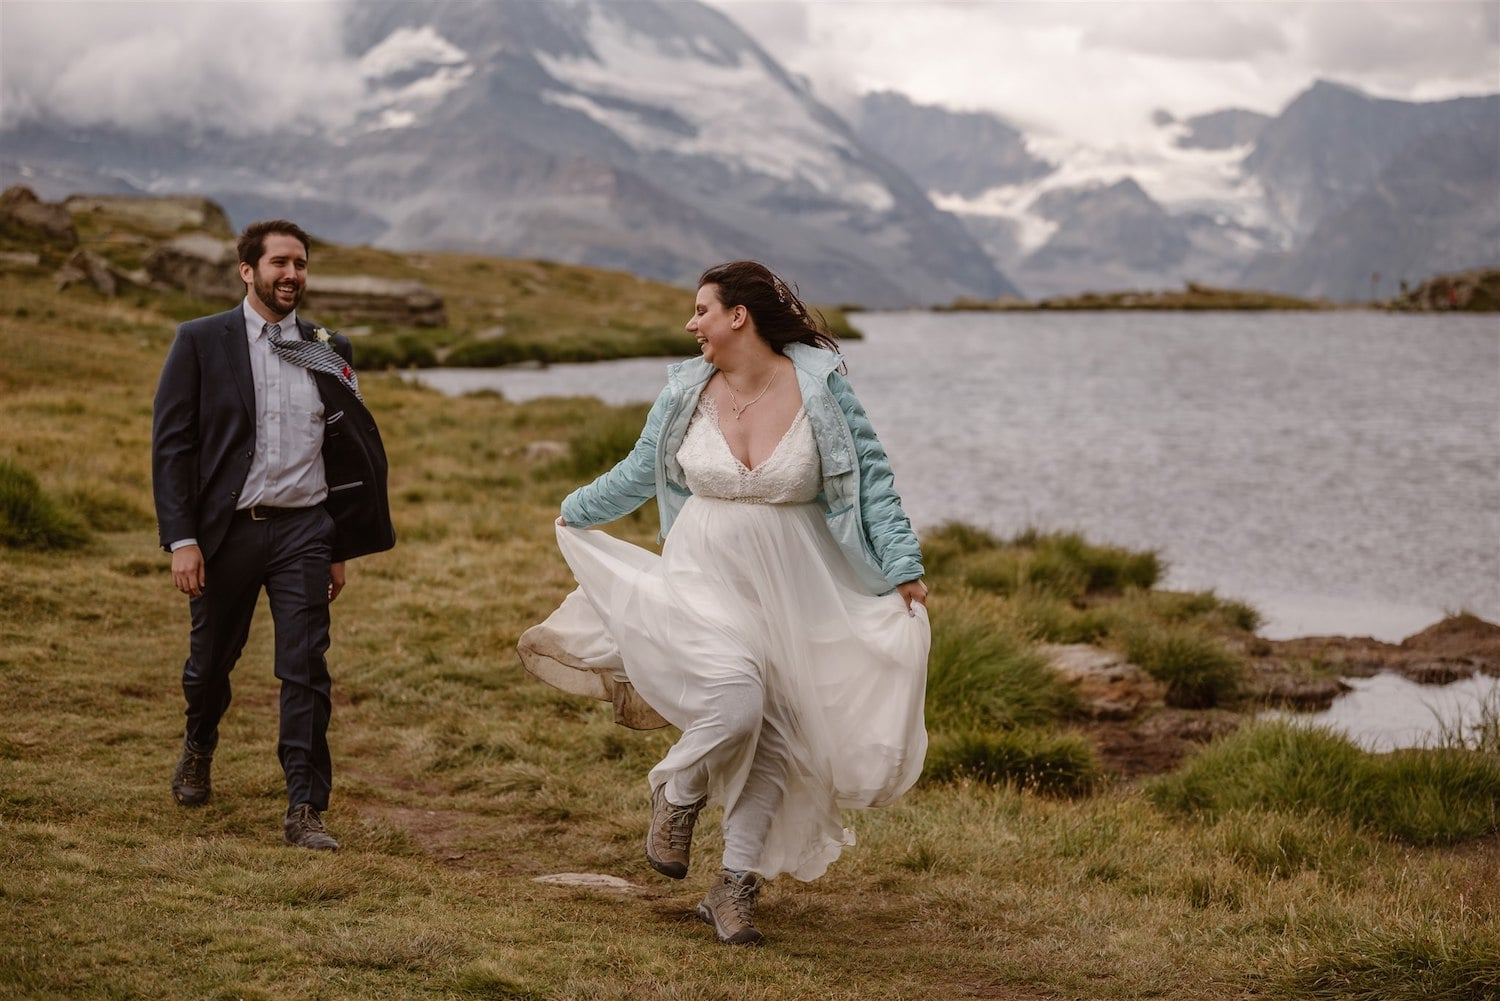 Couple running to their wedding ceremony in Switzerland